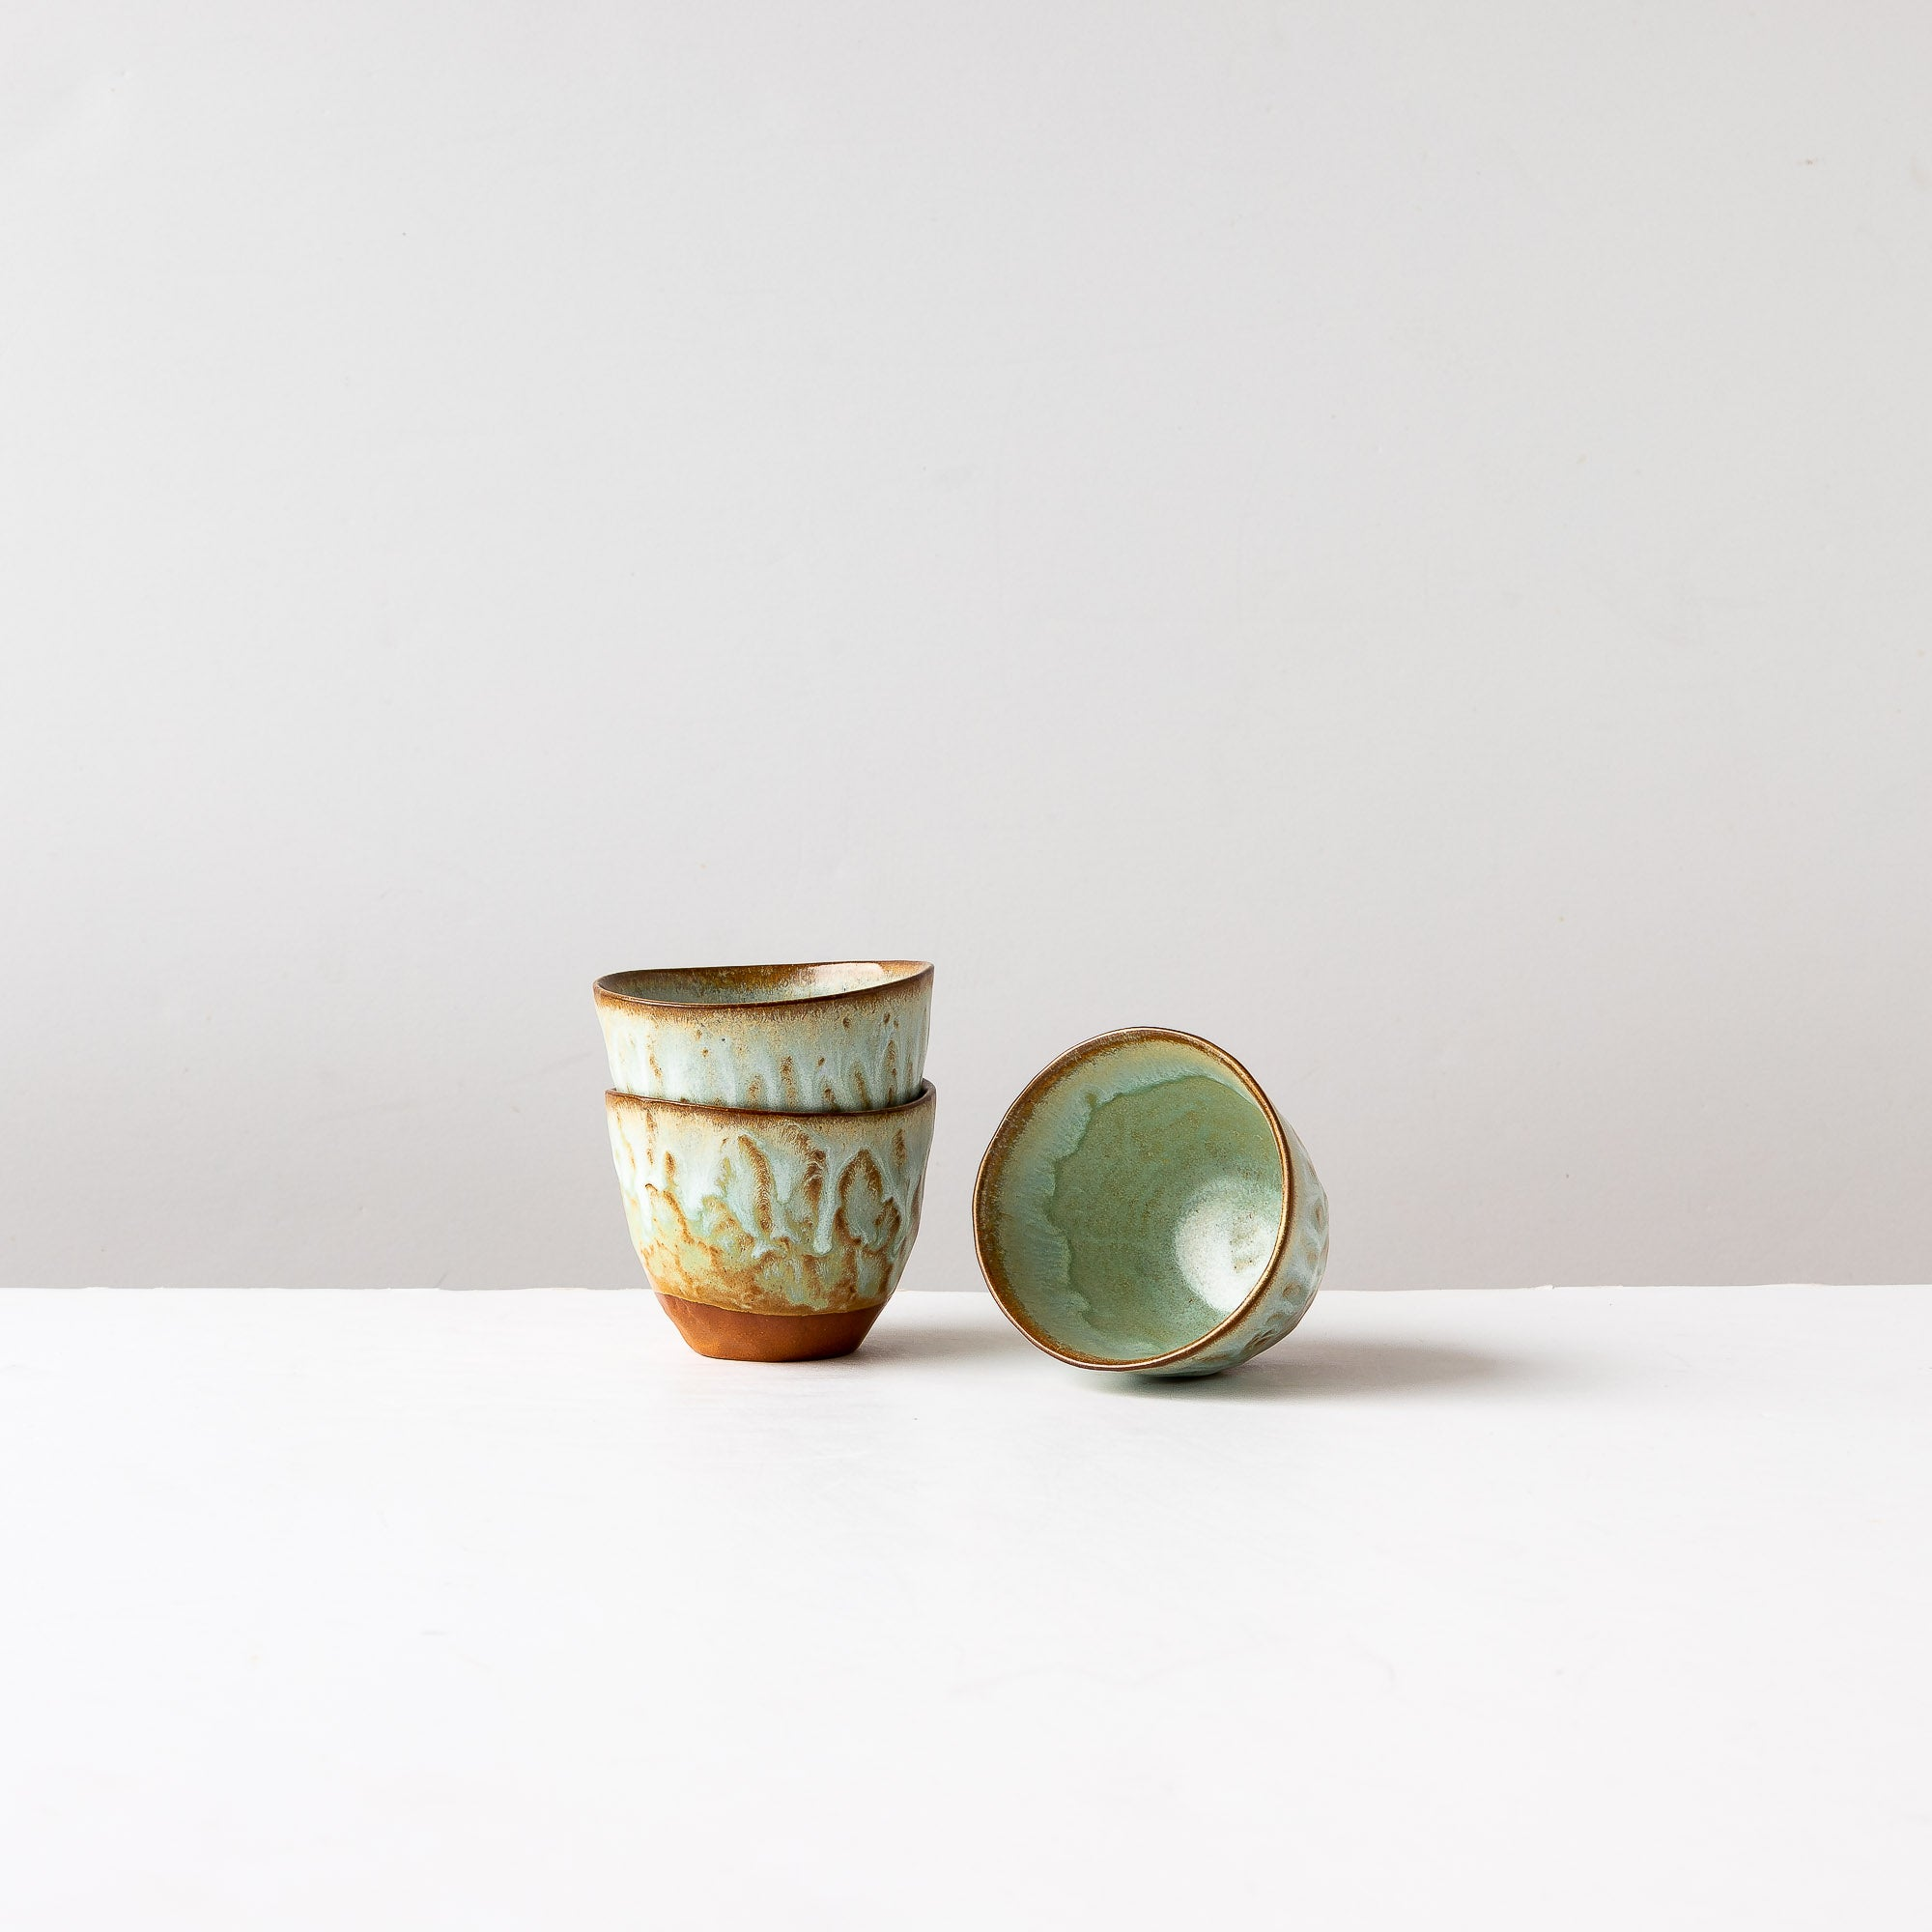 Handbuilt Tea Bowls in Red Stoneware & Turquoise Glaze - Sold by Chic & Basta